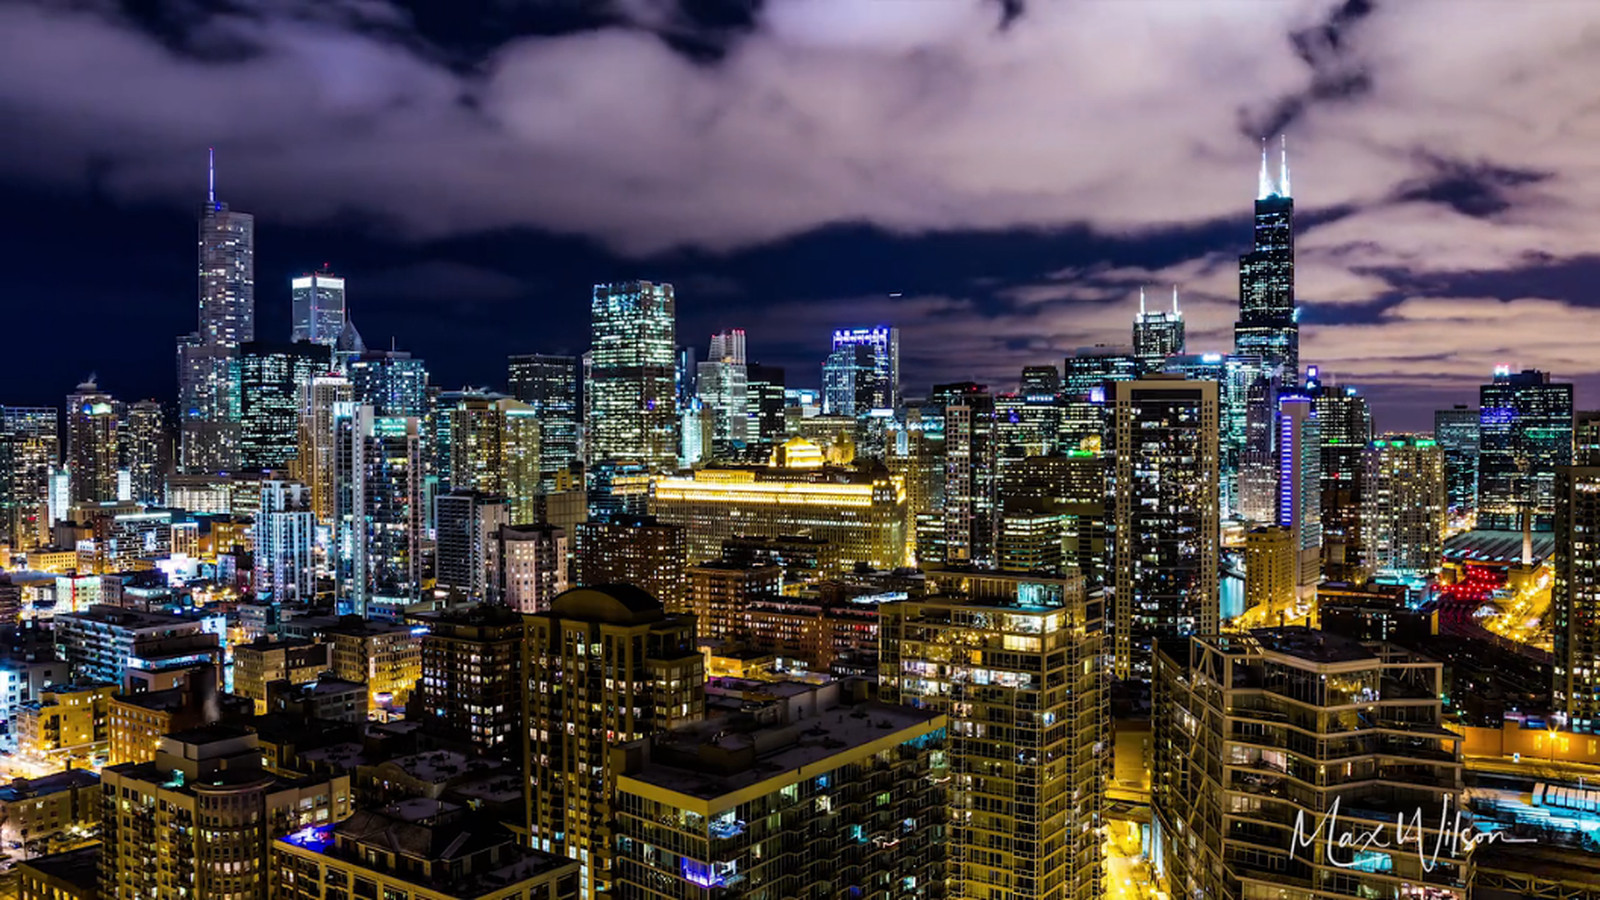 Time lapse video highlights Chicago's colorful skyline at night